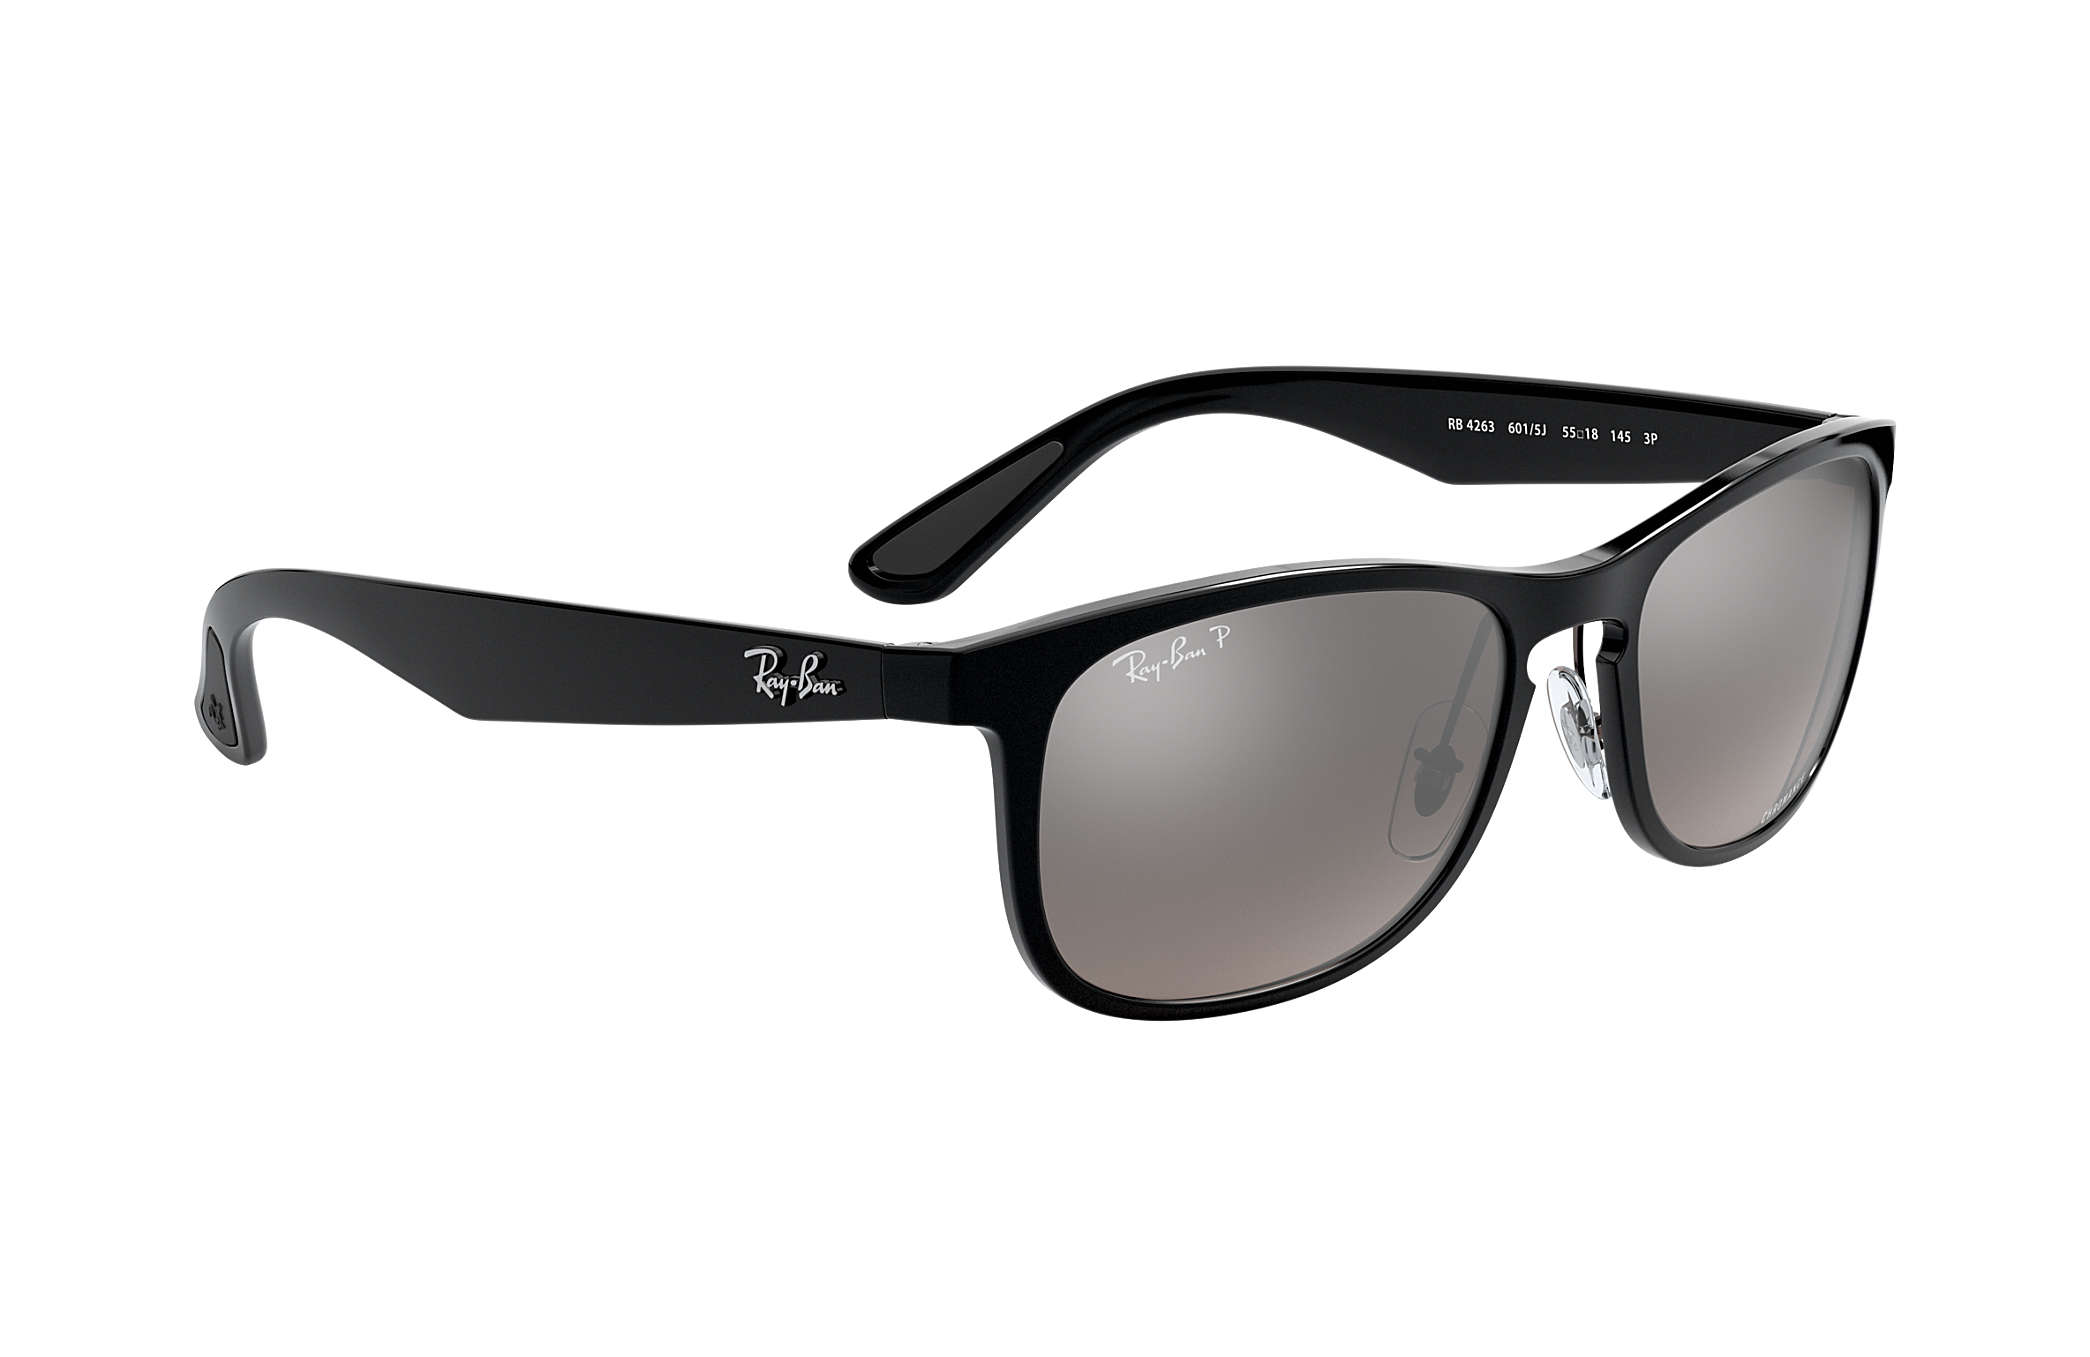 c9894c5a48f0 Ray-Ban Rb4263 Chromance RB4263 Black - Nylon - Silver Polarized ...